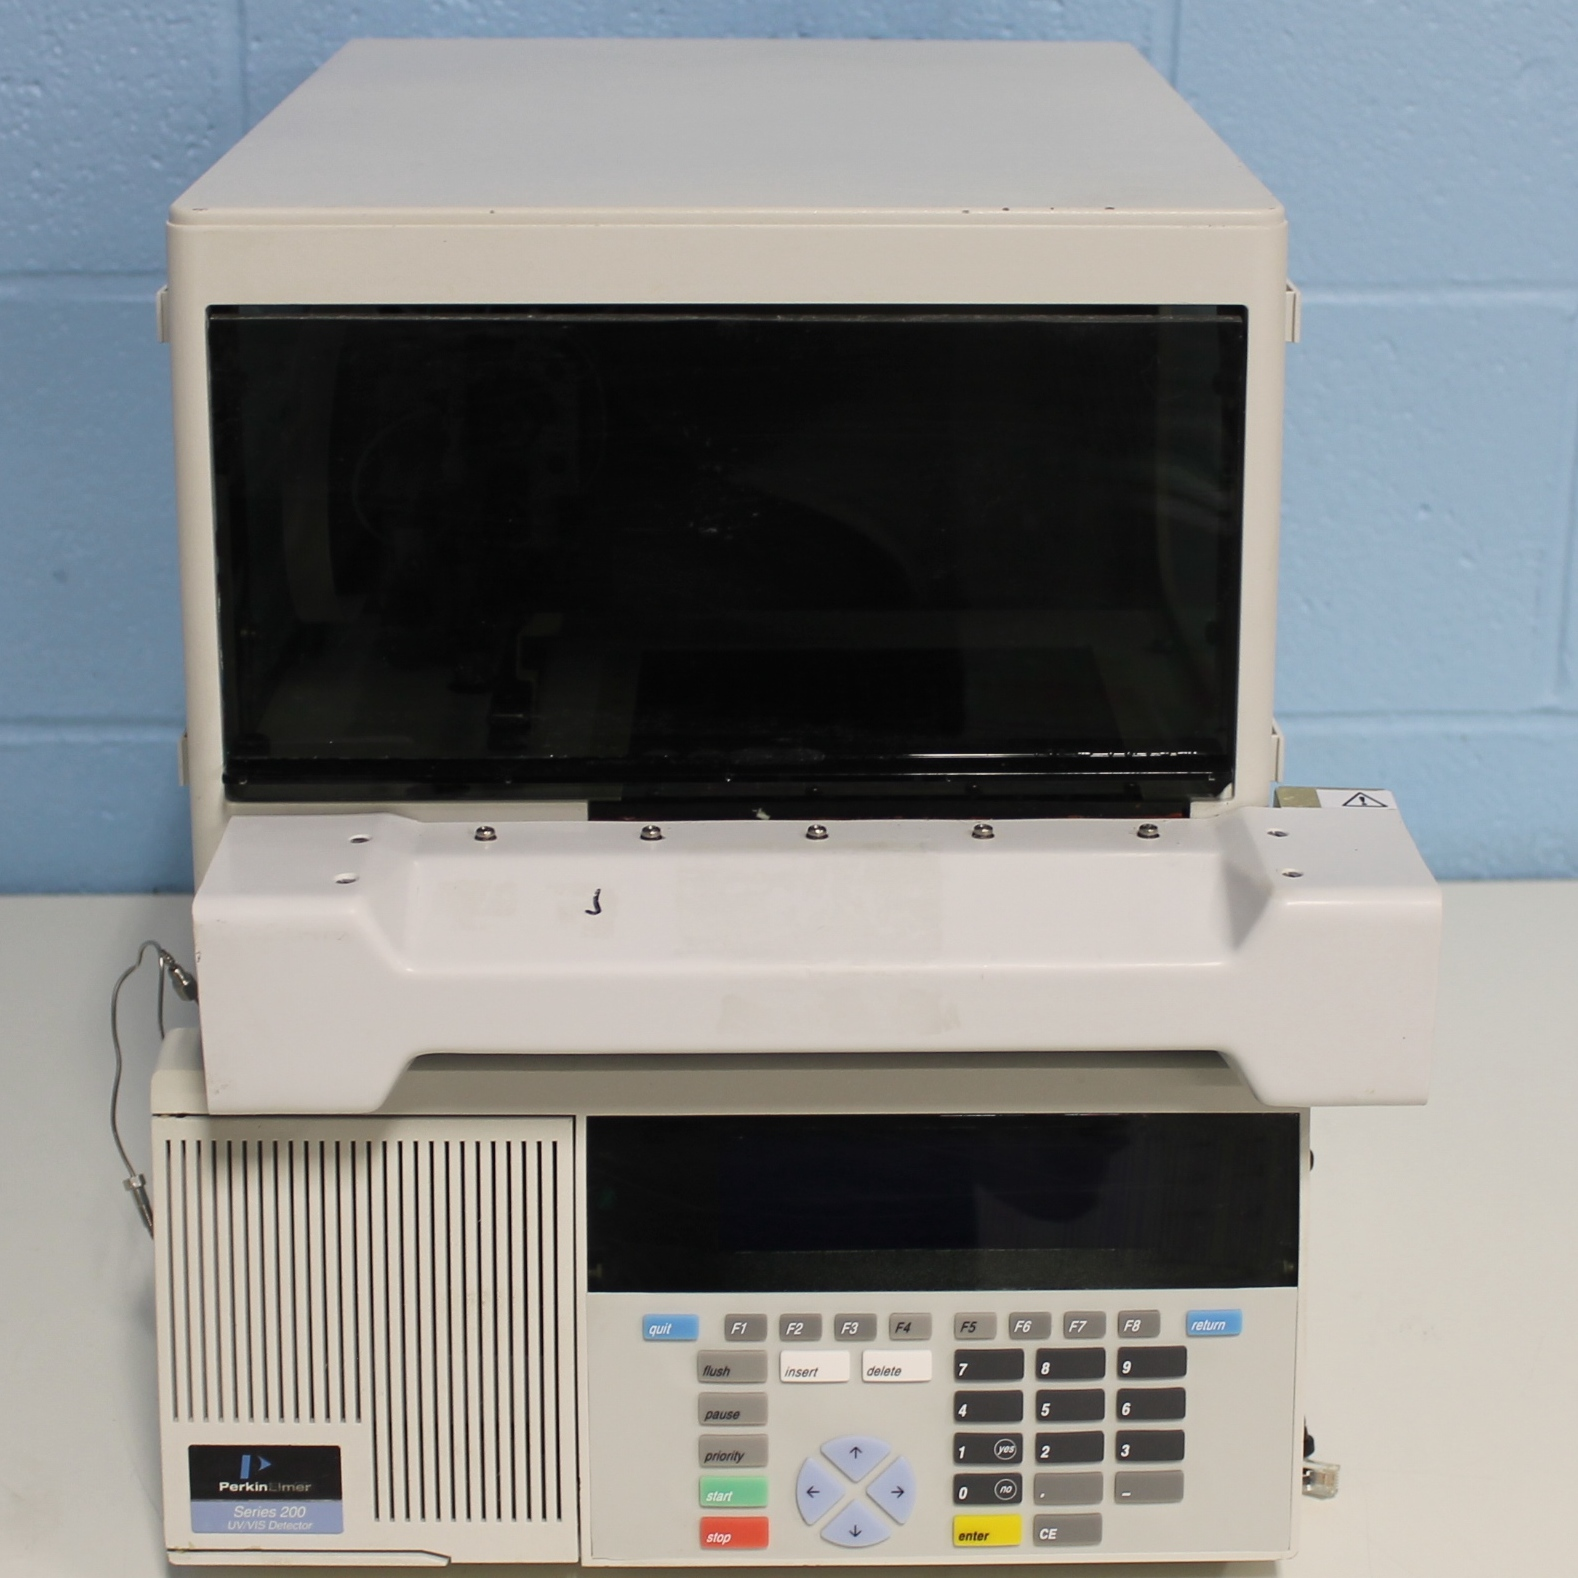 Perkin Elmer Series 200 Autosampler With Peltier Tray Control Assembly Image